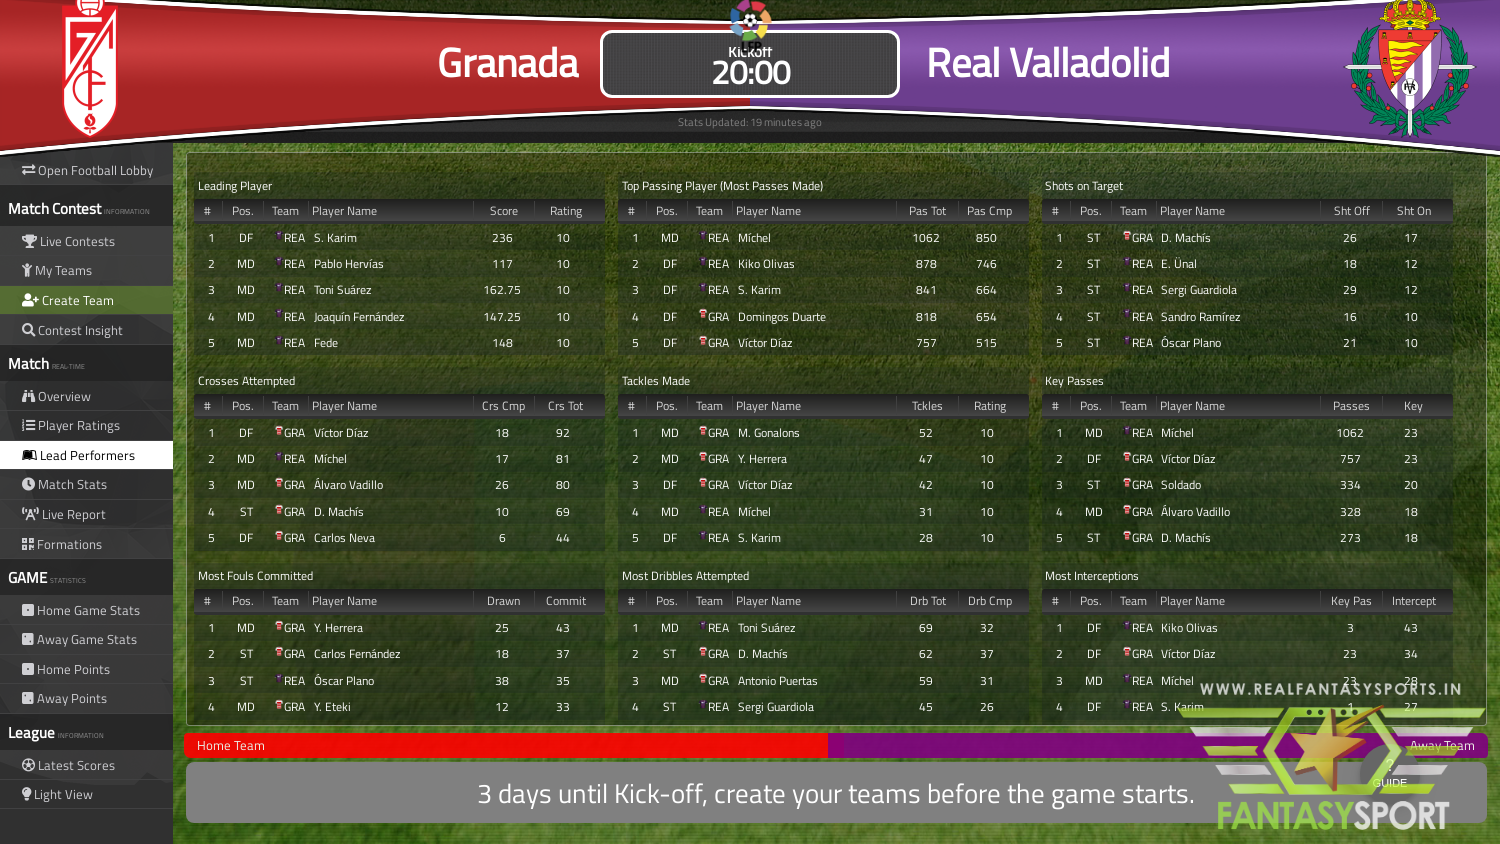 Granada Vs Real Valladolid Fantasy Football Team